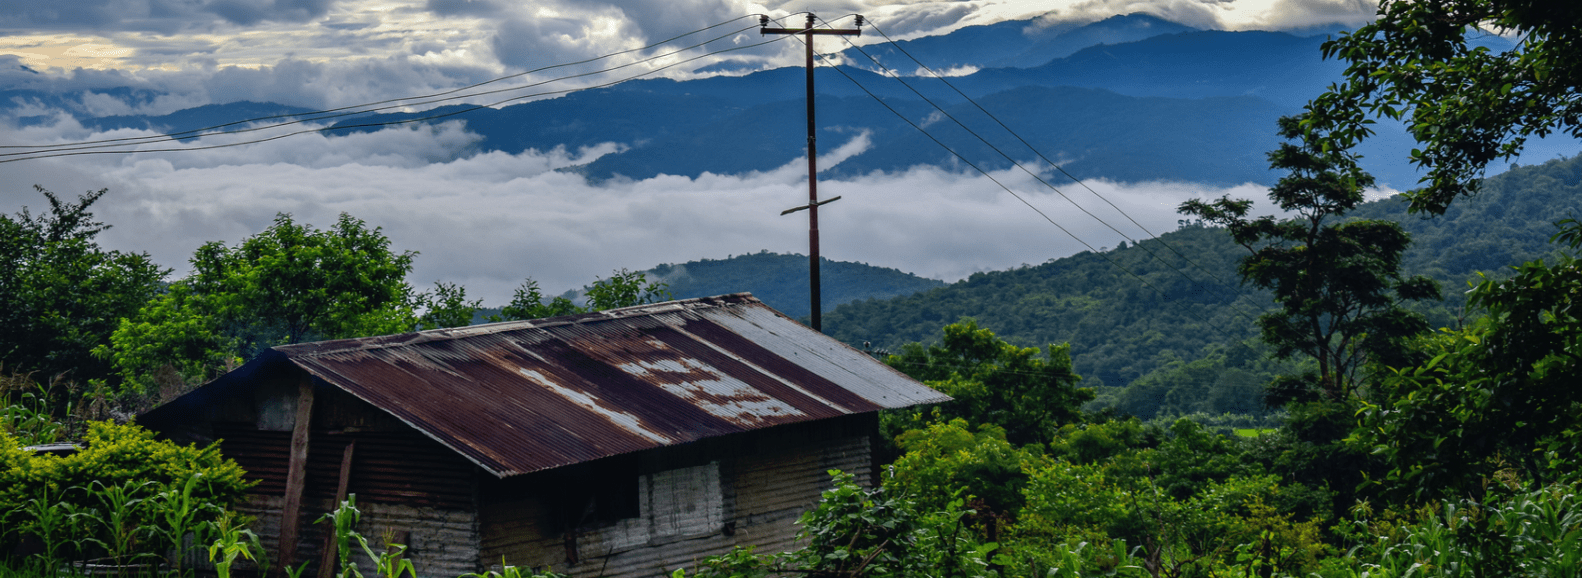 Picturesque view of Kohima Mountains with clouds floating